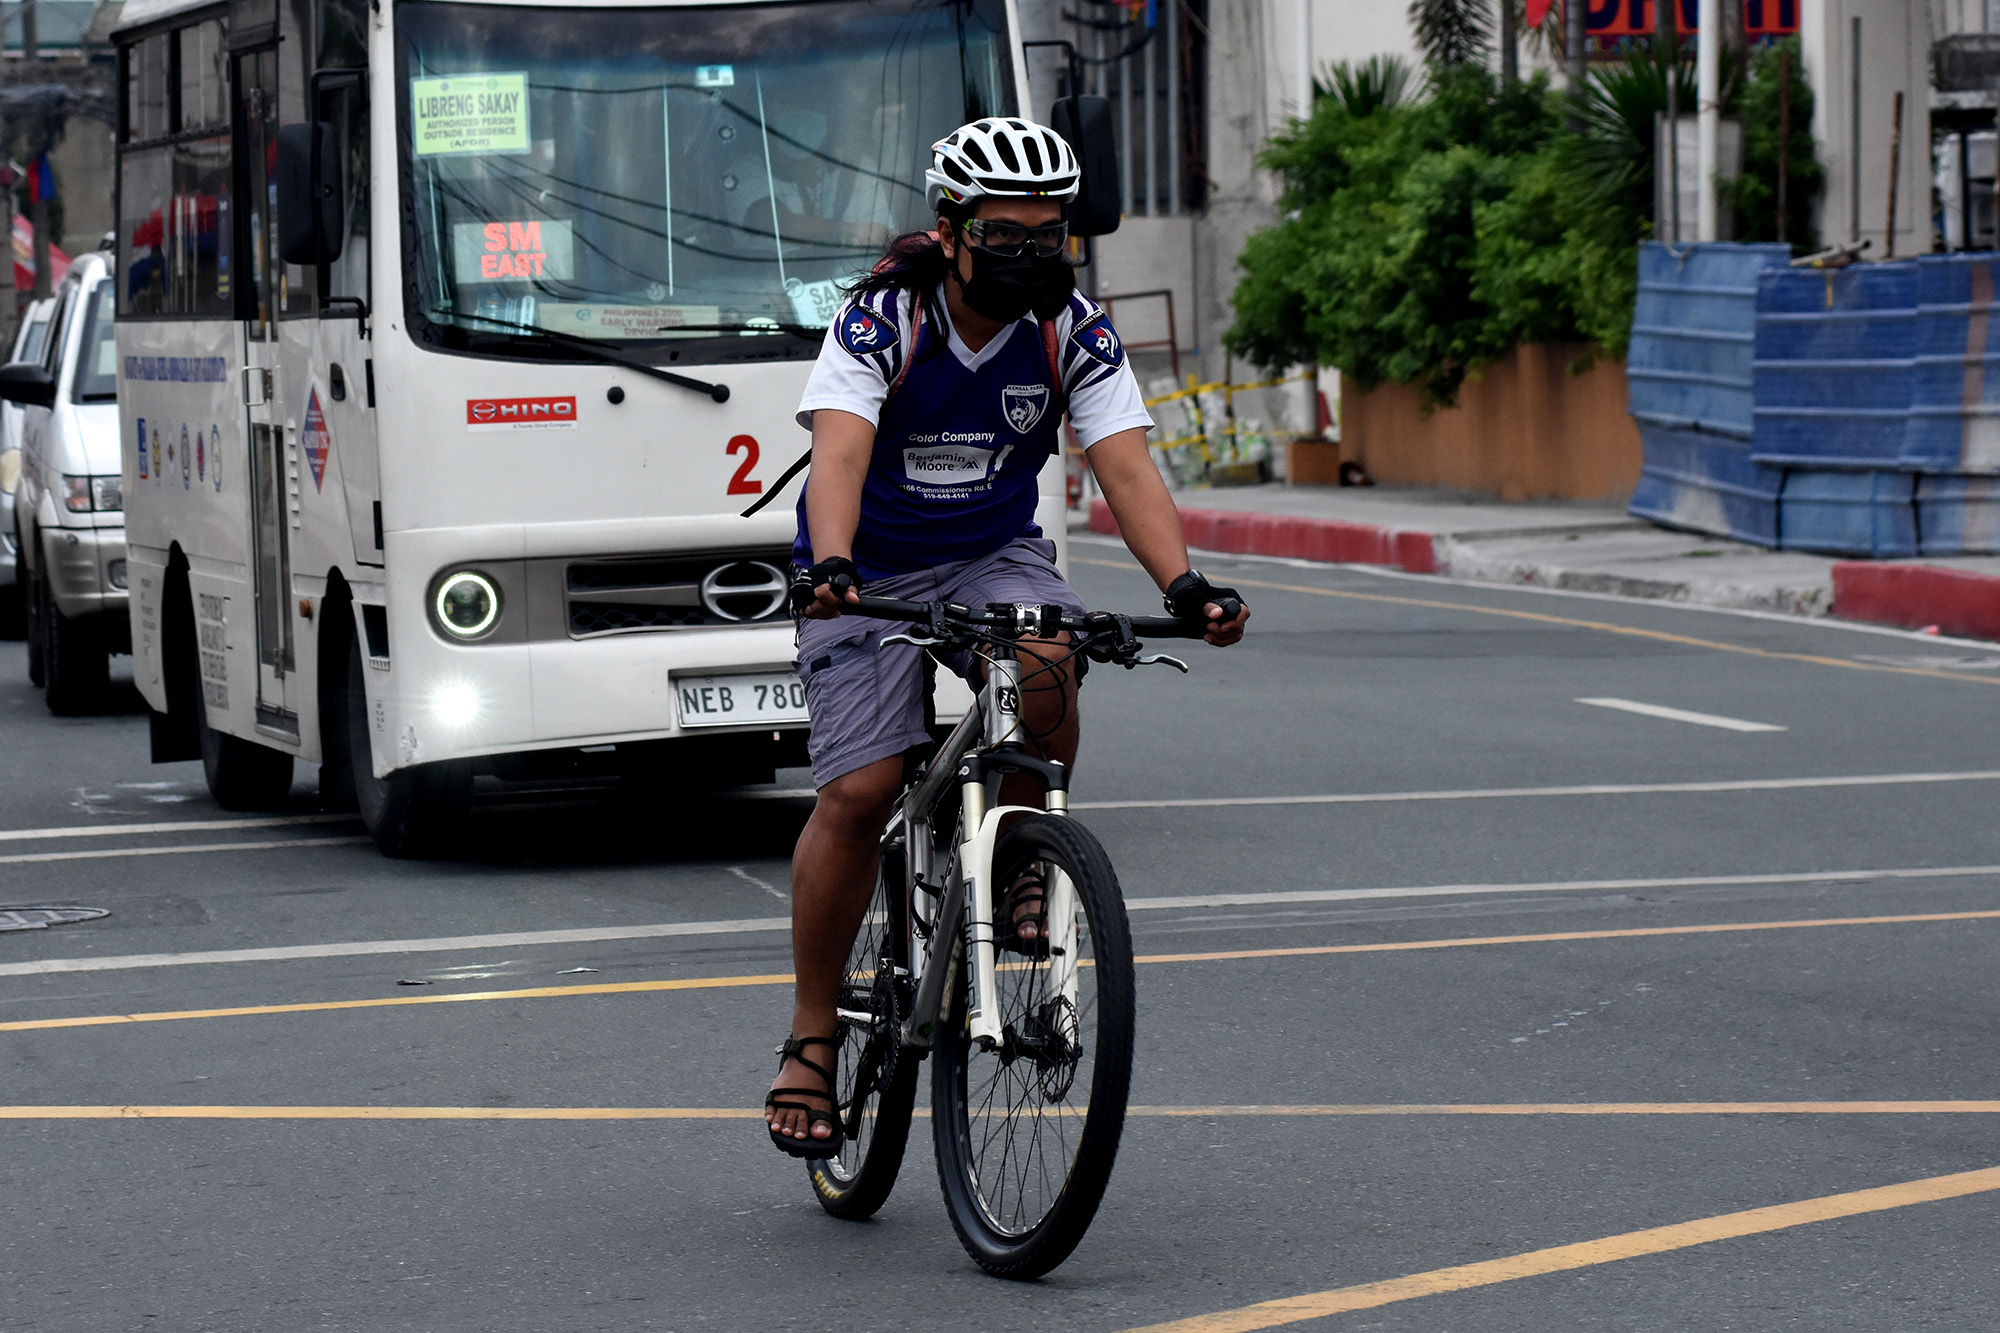 Mobility Awards nominations for bike-friendly venues on